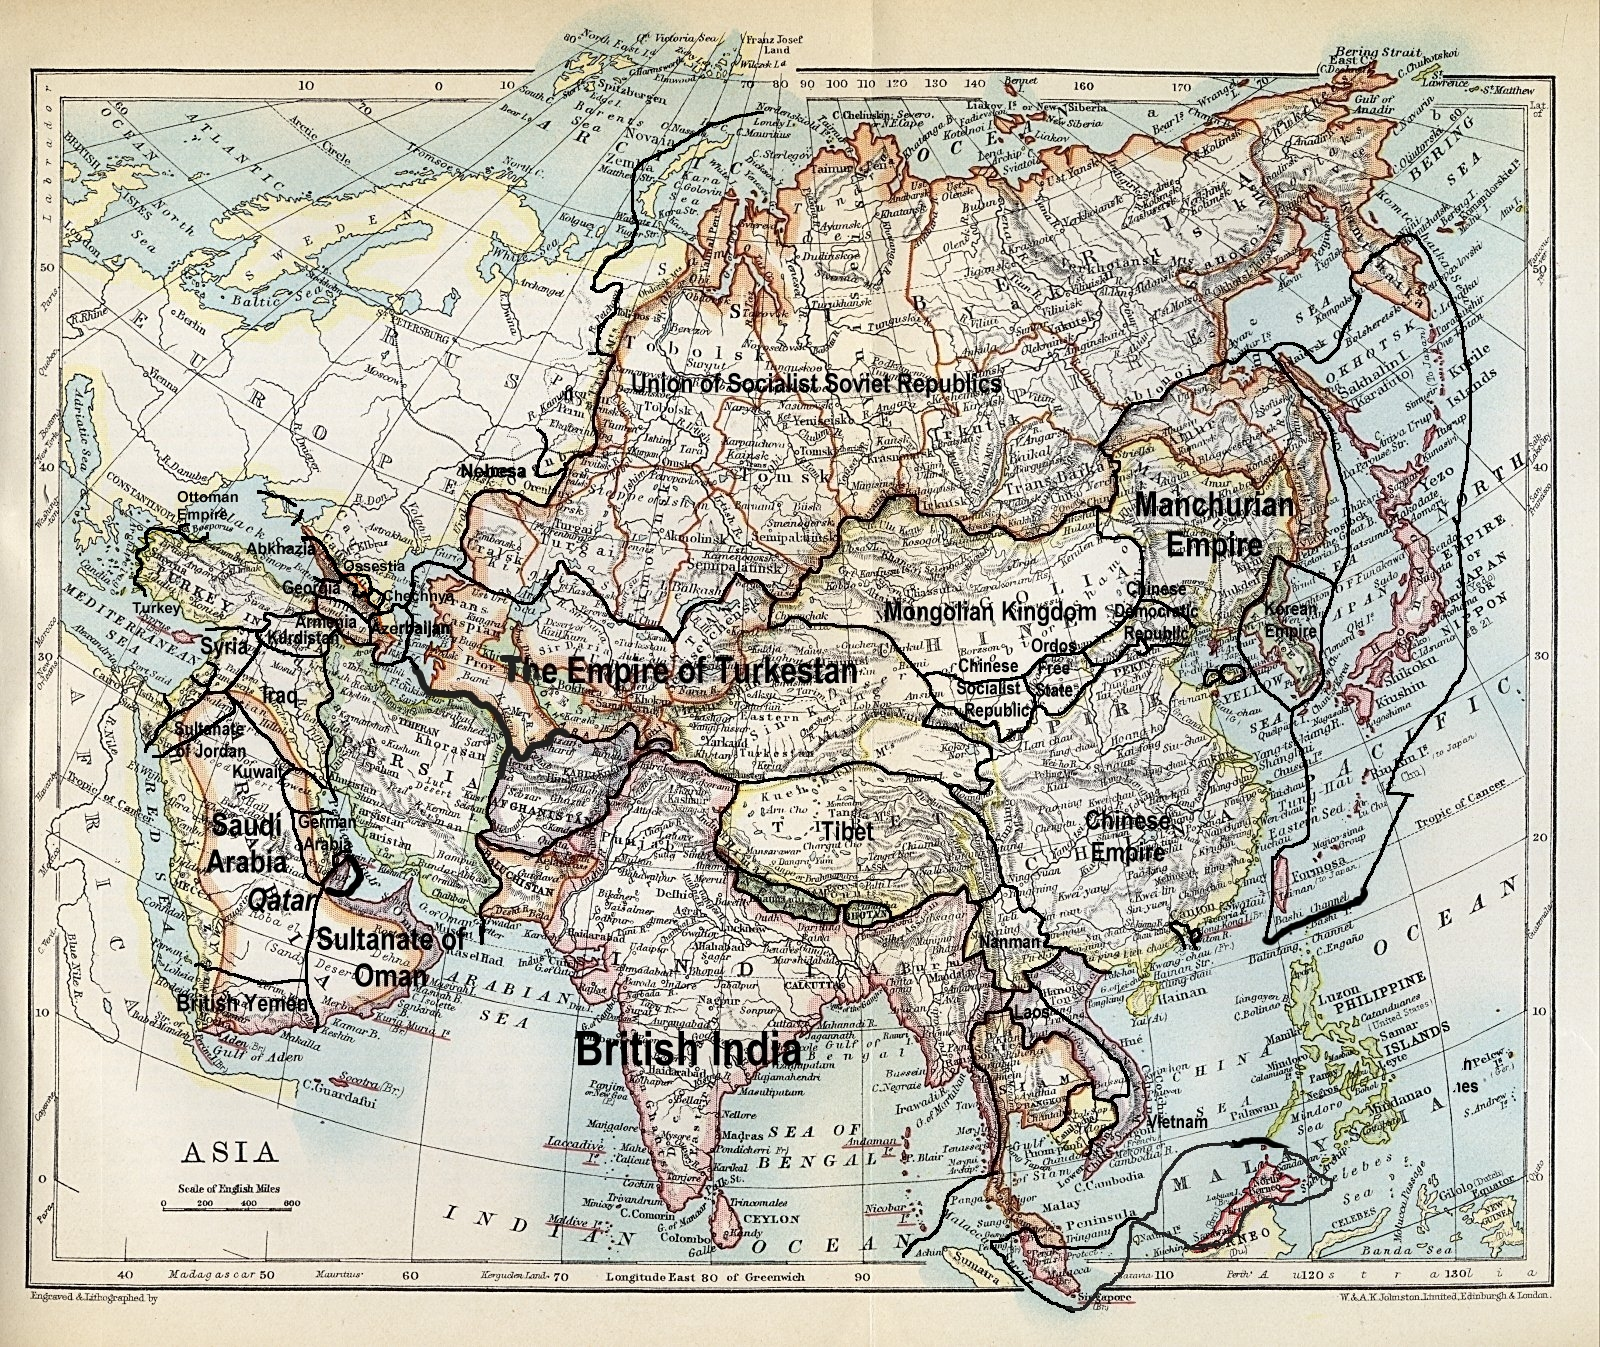 Image Map of Asia 1915jpg Alternative History – Global Map of Asia